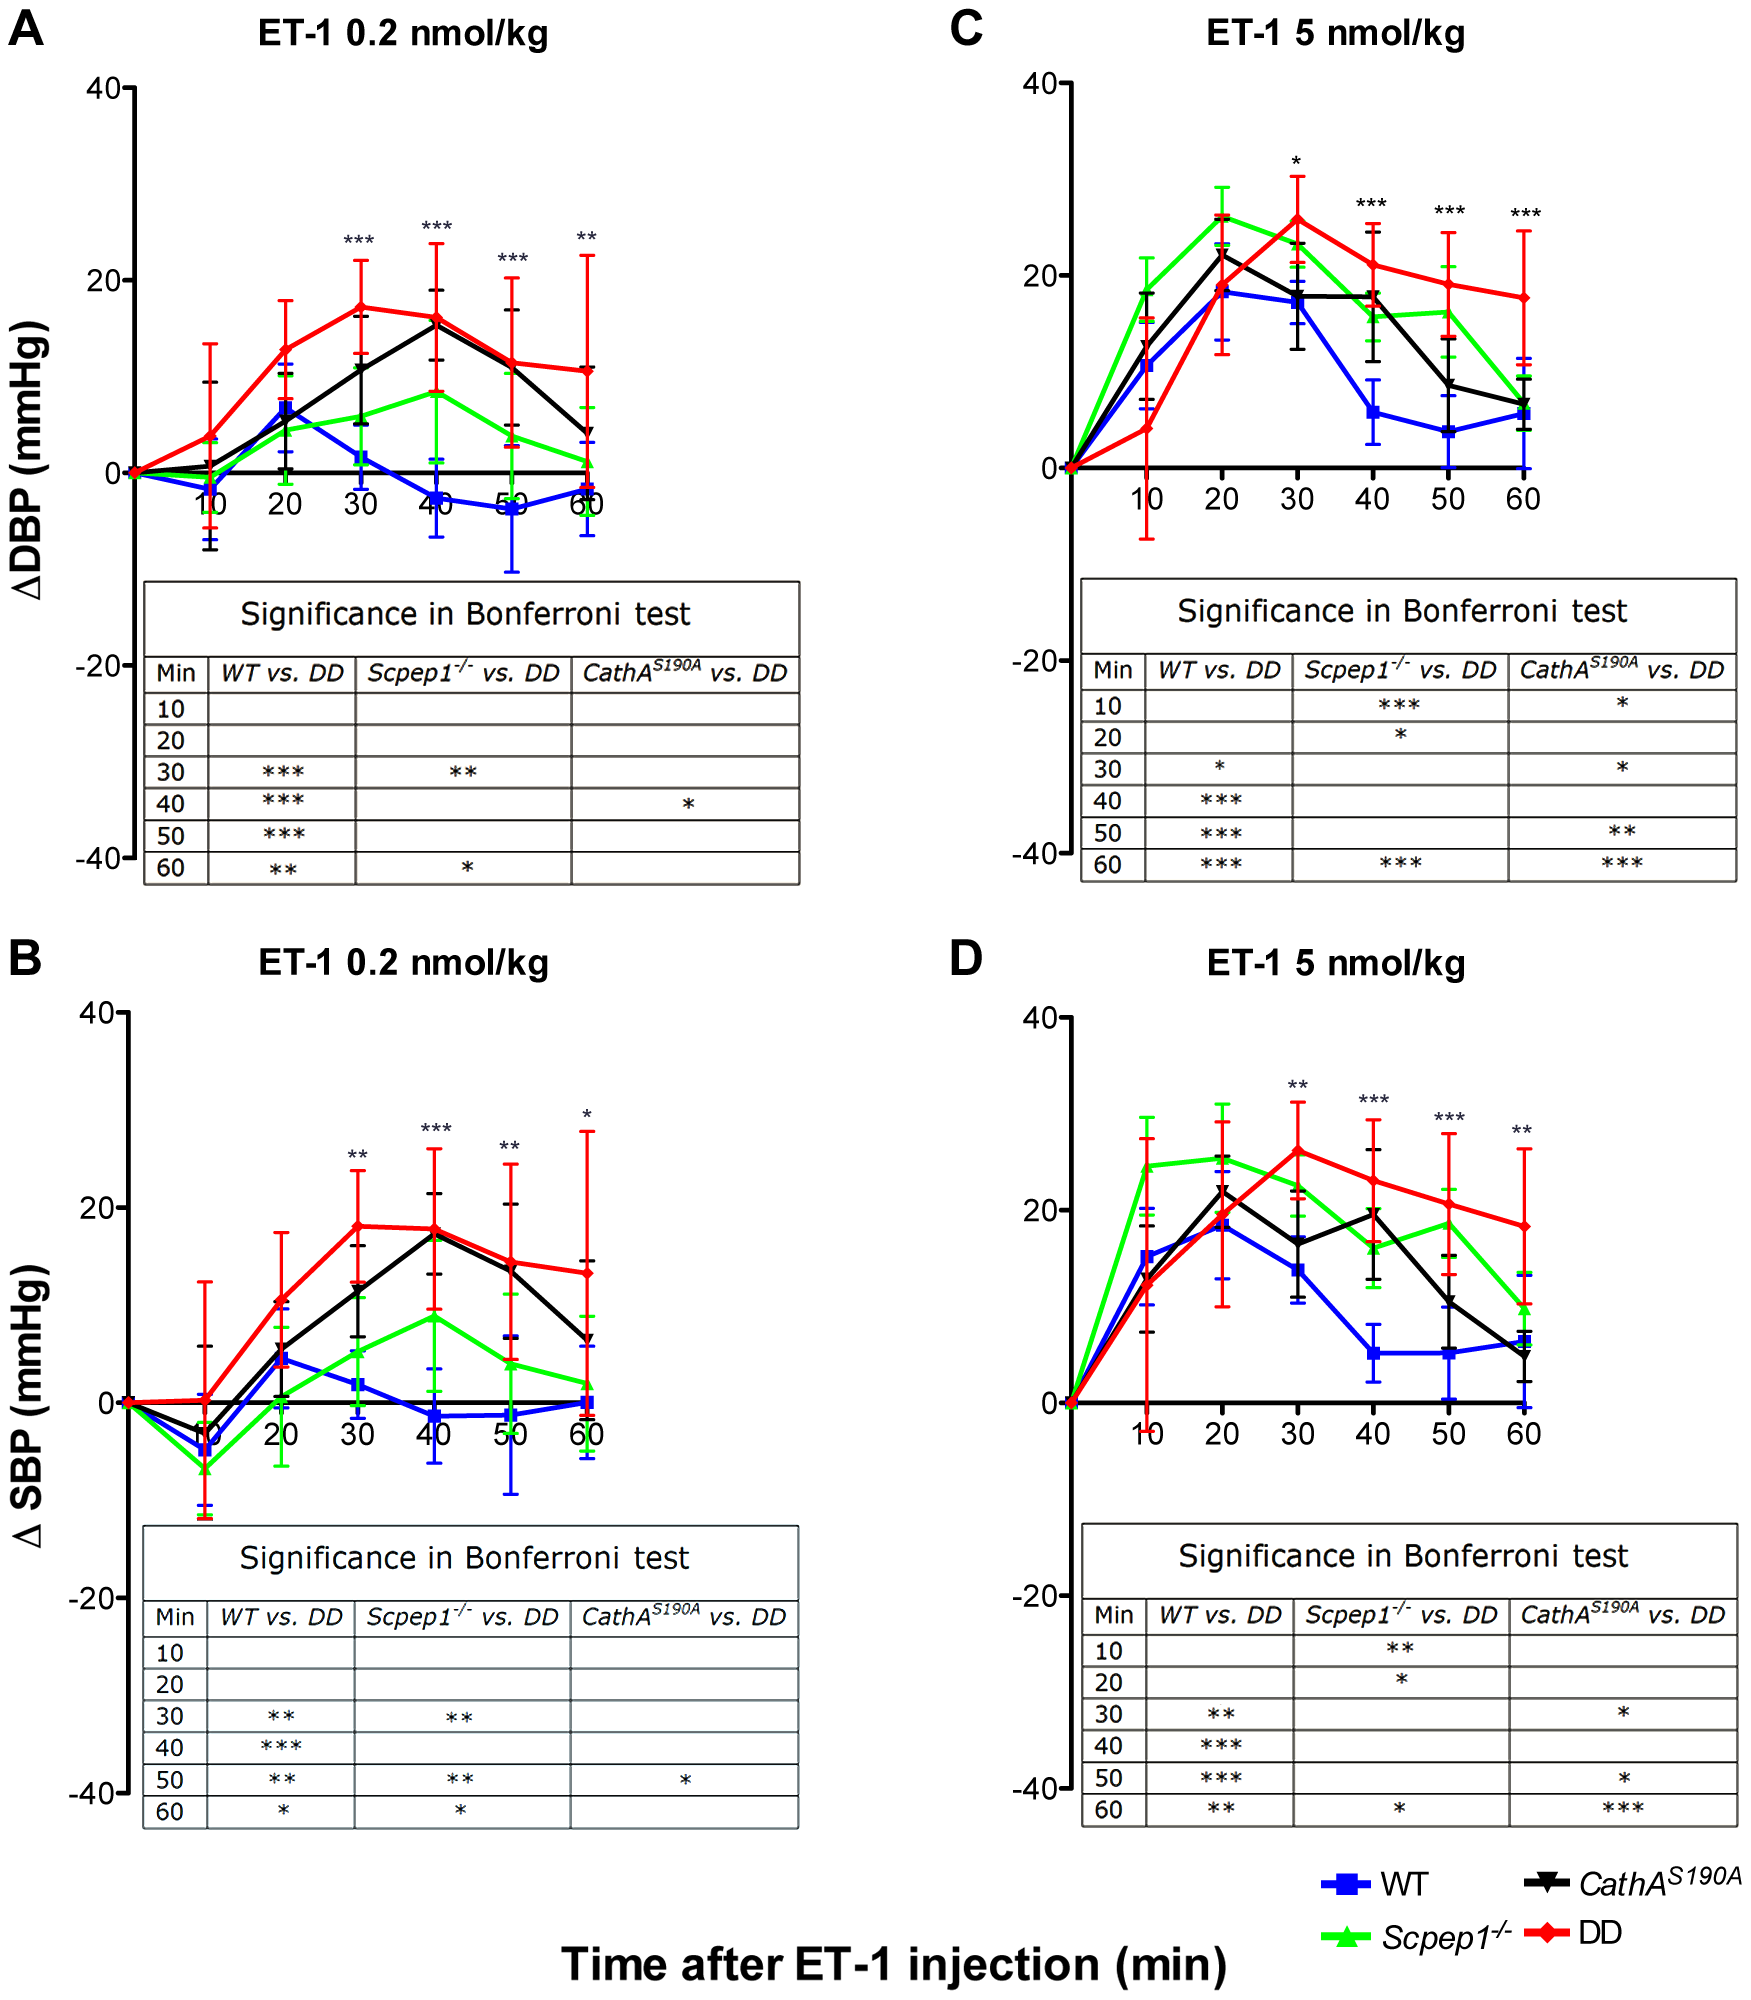 Mice with combined CathA/Scpep1 deficiency show higher increase in BP in response to systemic injection of ET-1.